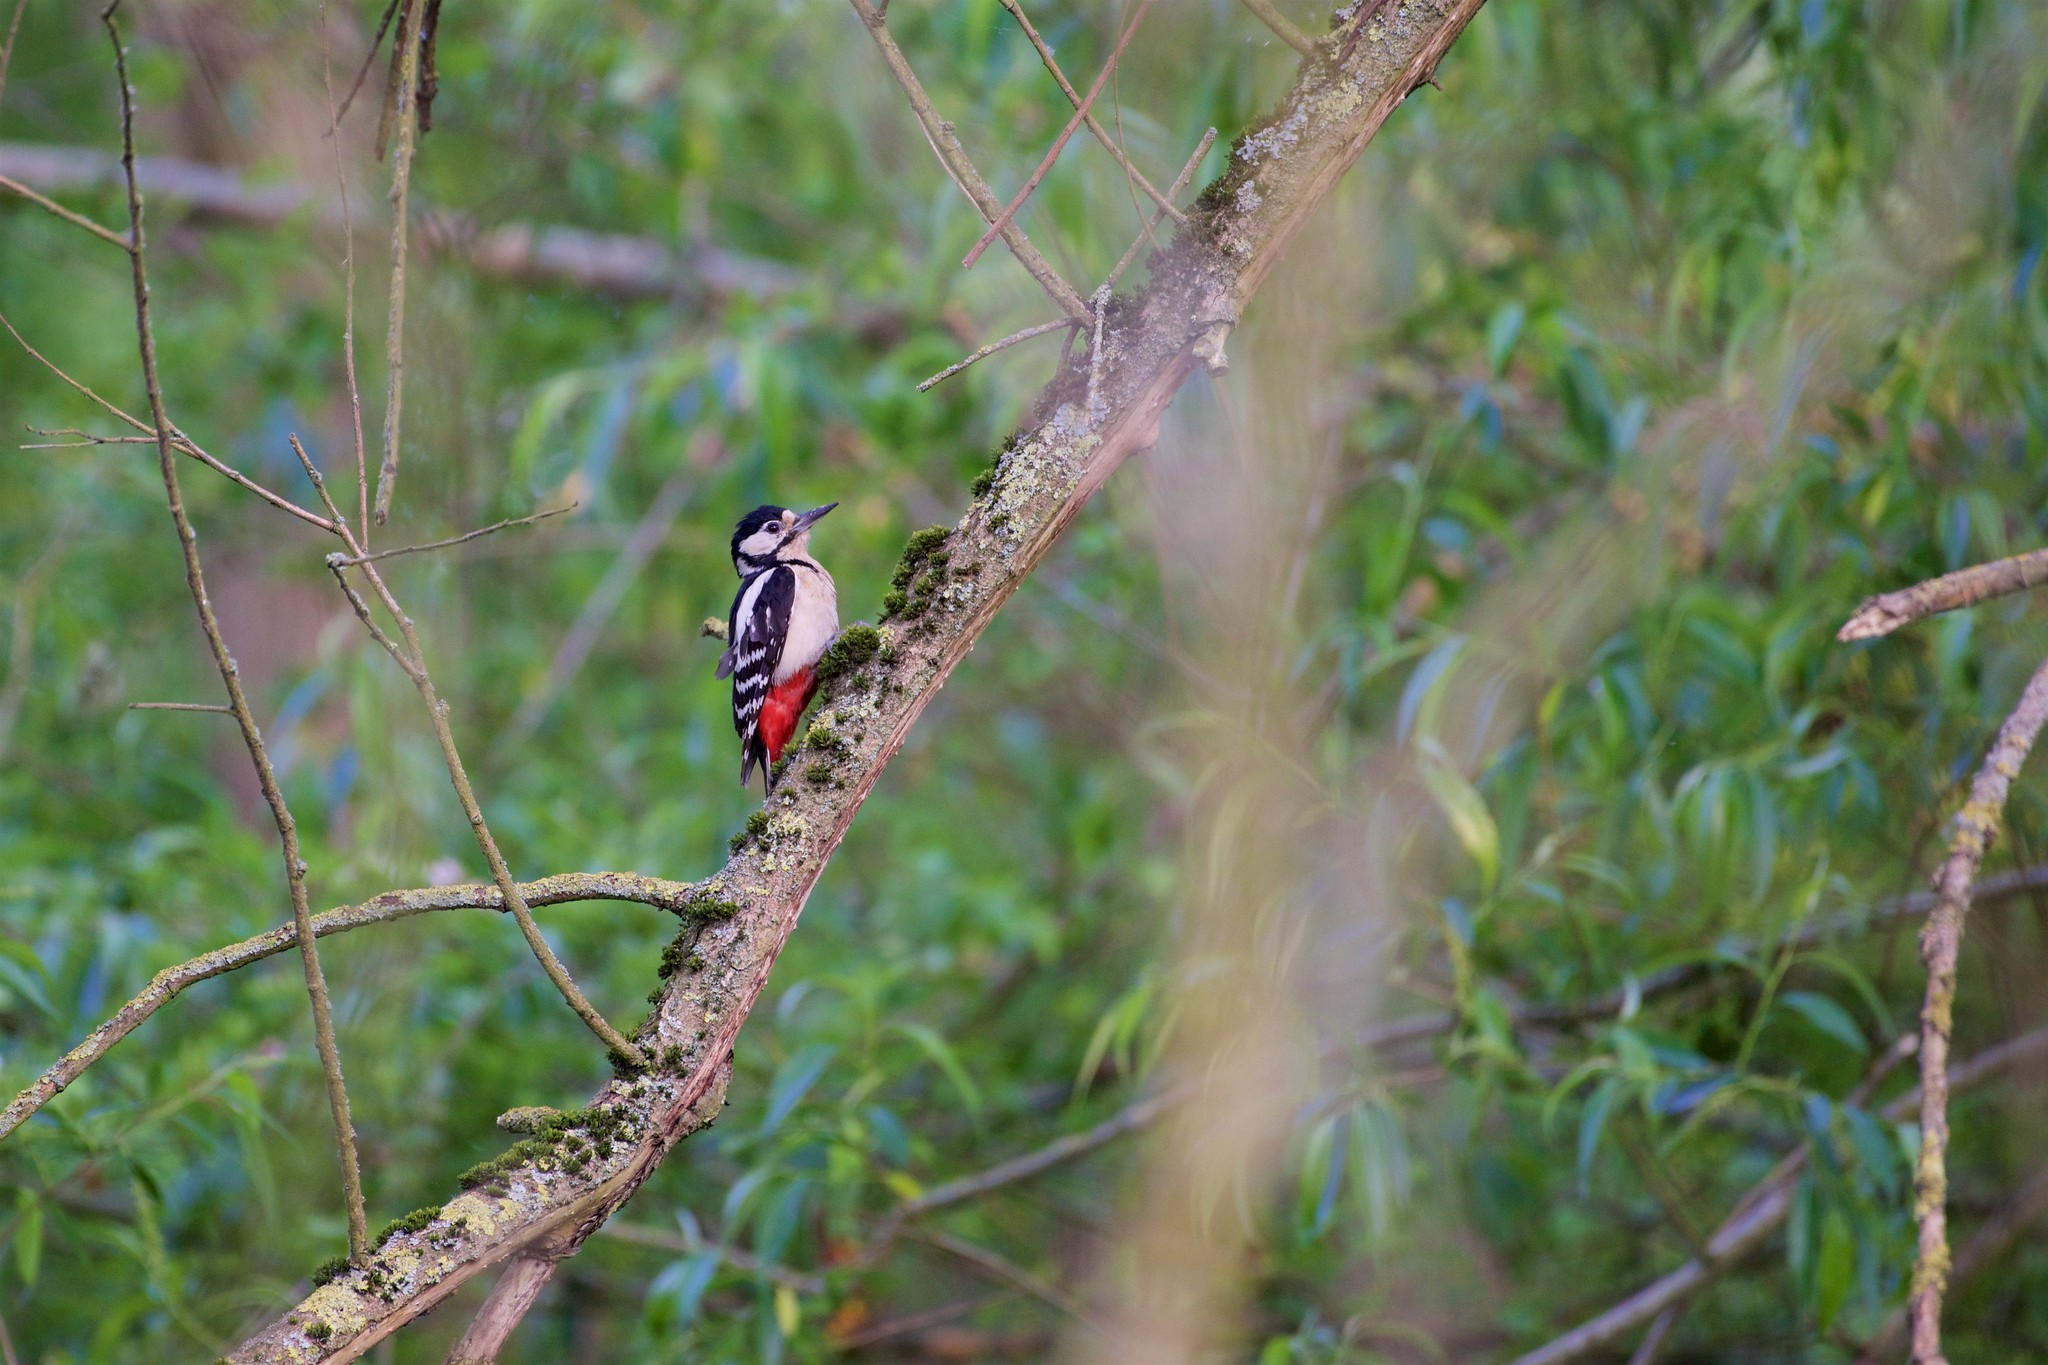 Great spotted woodpecker (कठफोड़वा) - Dendrocopos major